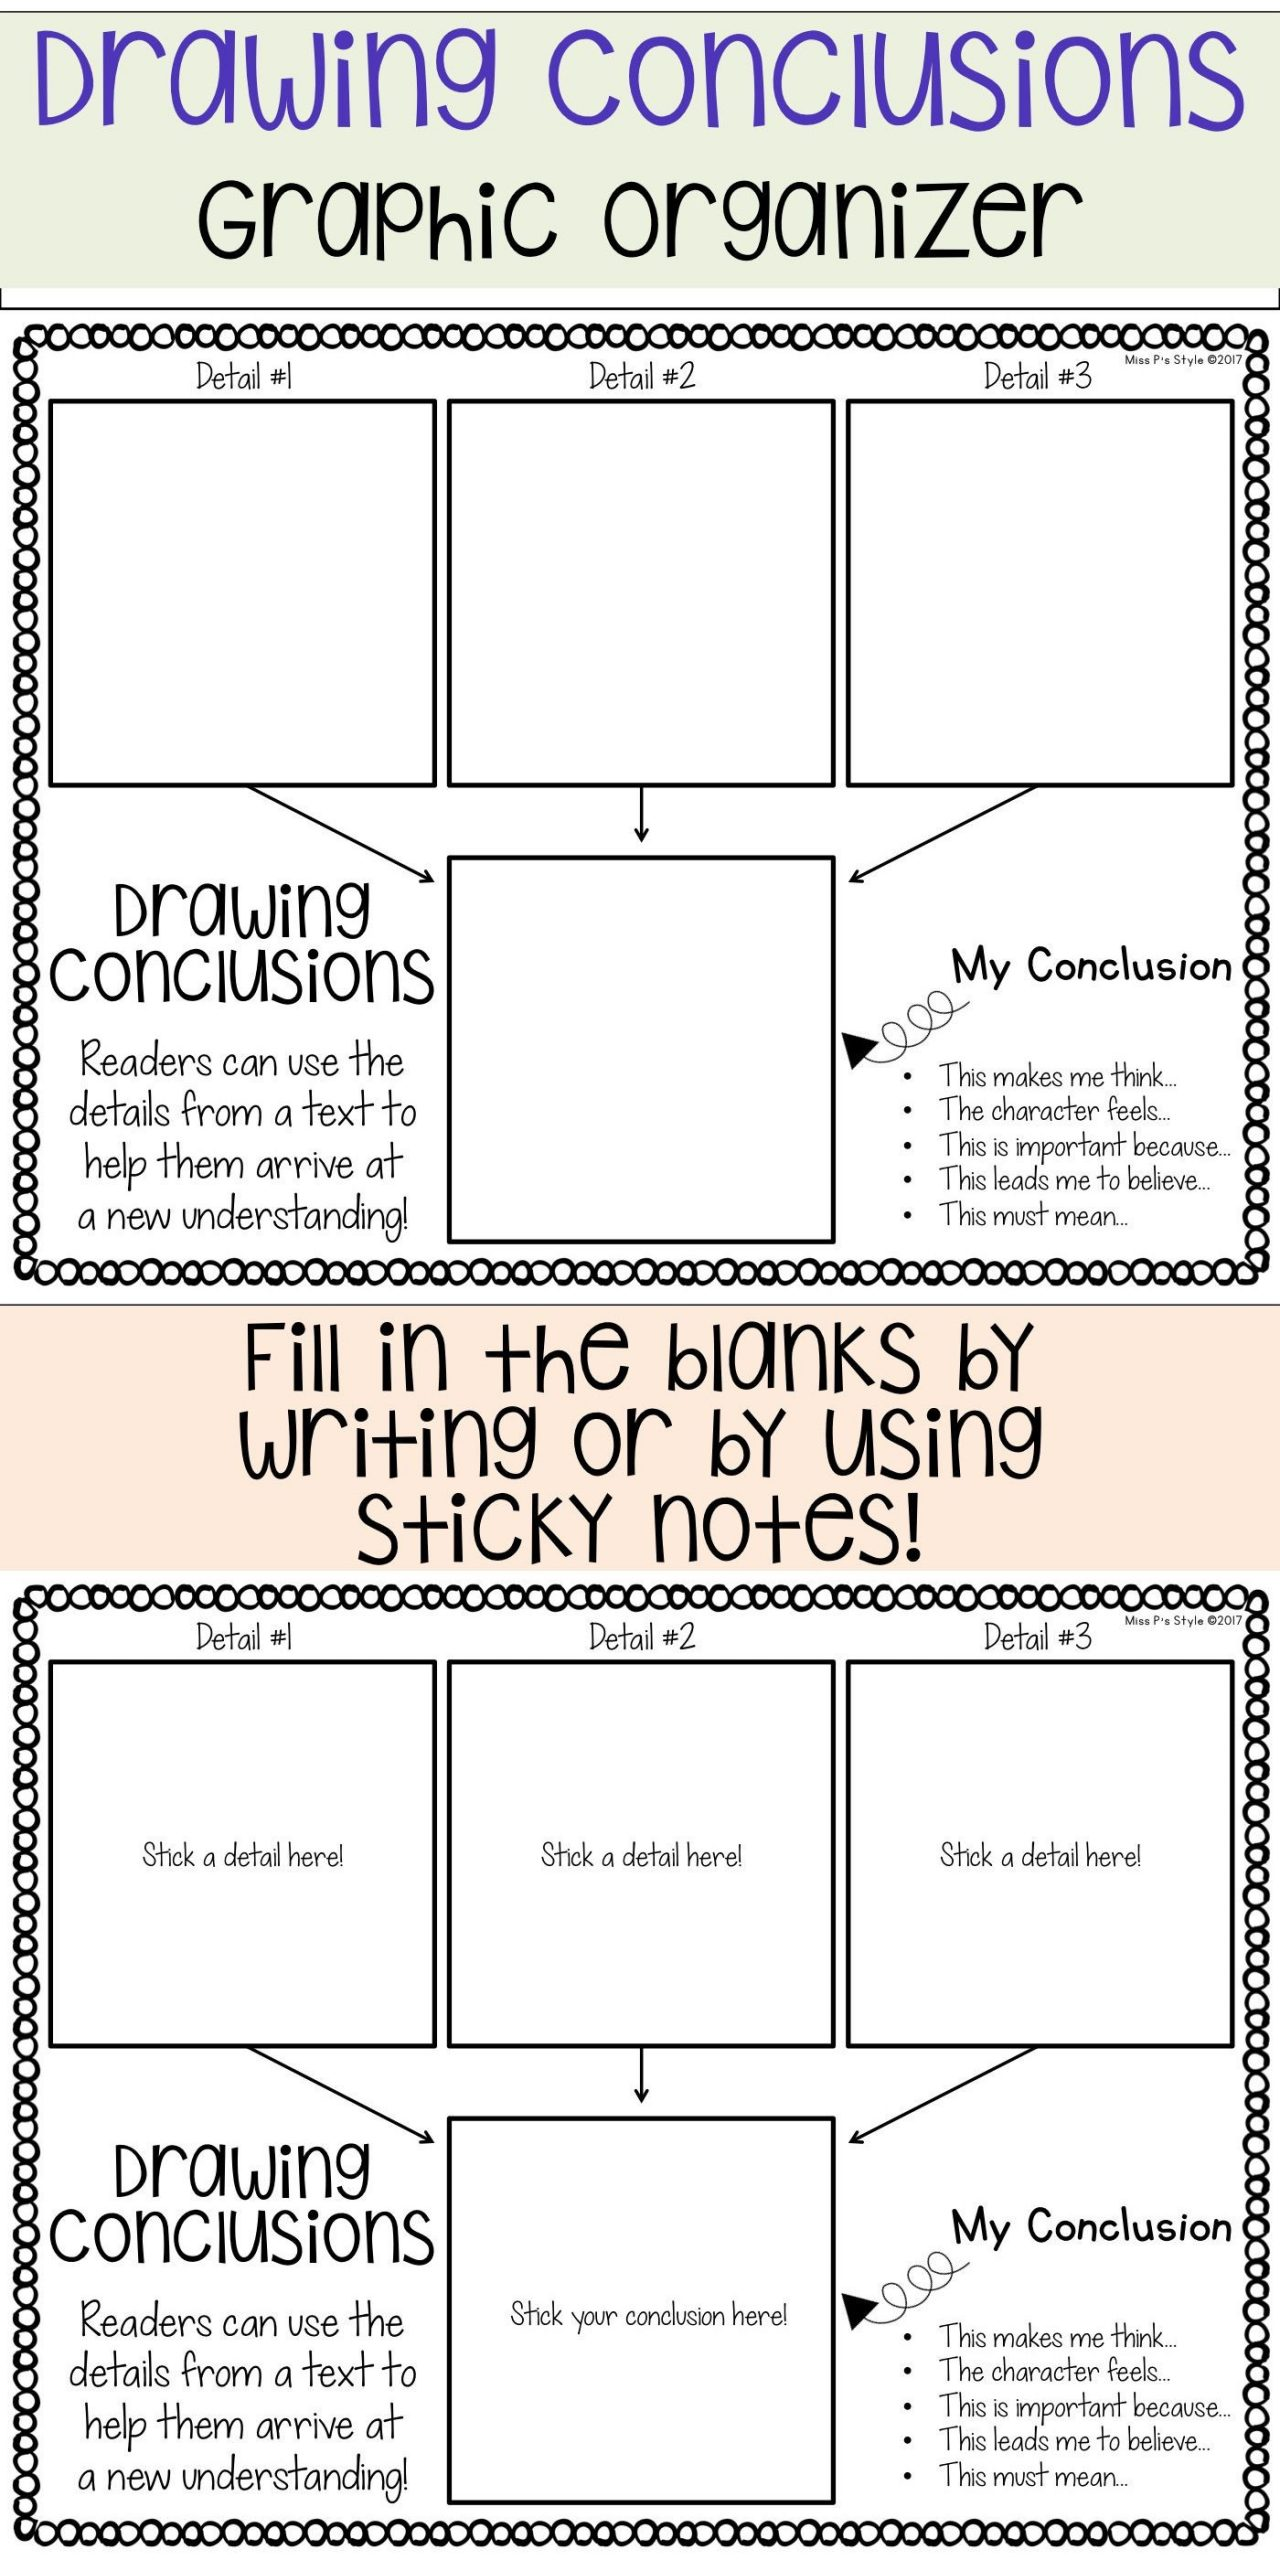 Drawing Conclusions Worksheets 4th Grade Drawing Conclusions Graphic organizer